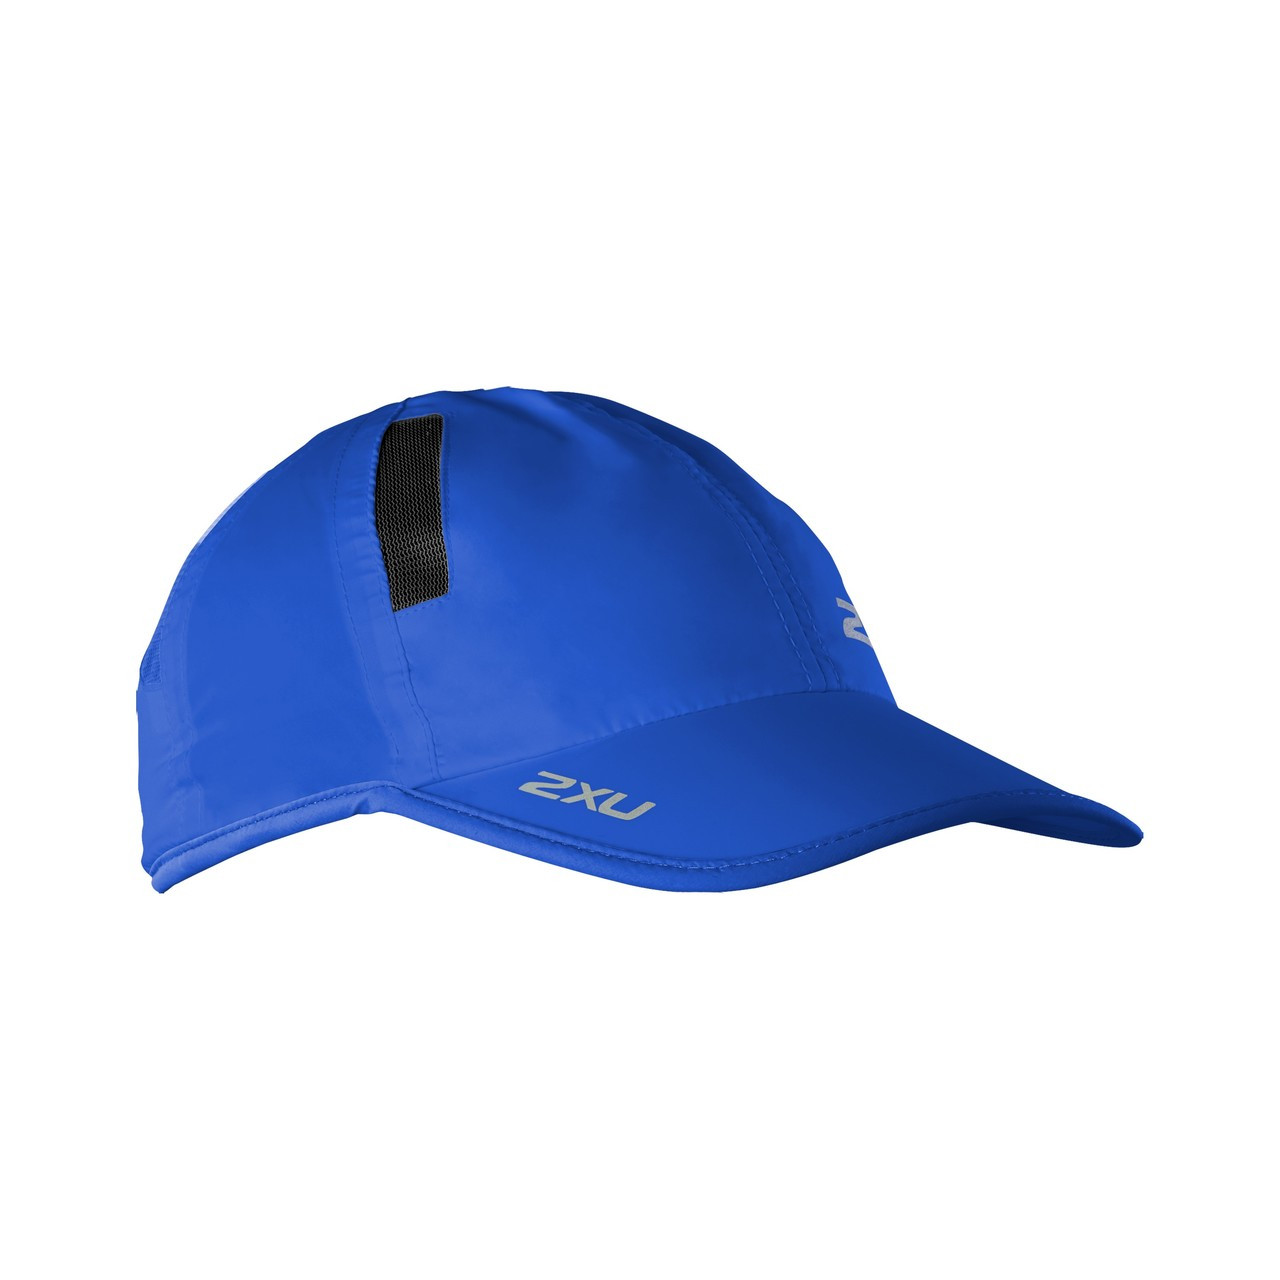 2XU Running Visor Blue Breathable Lightweight UV Protection Quick Dry Race Hat